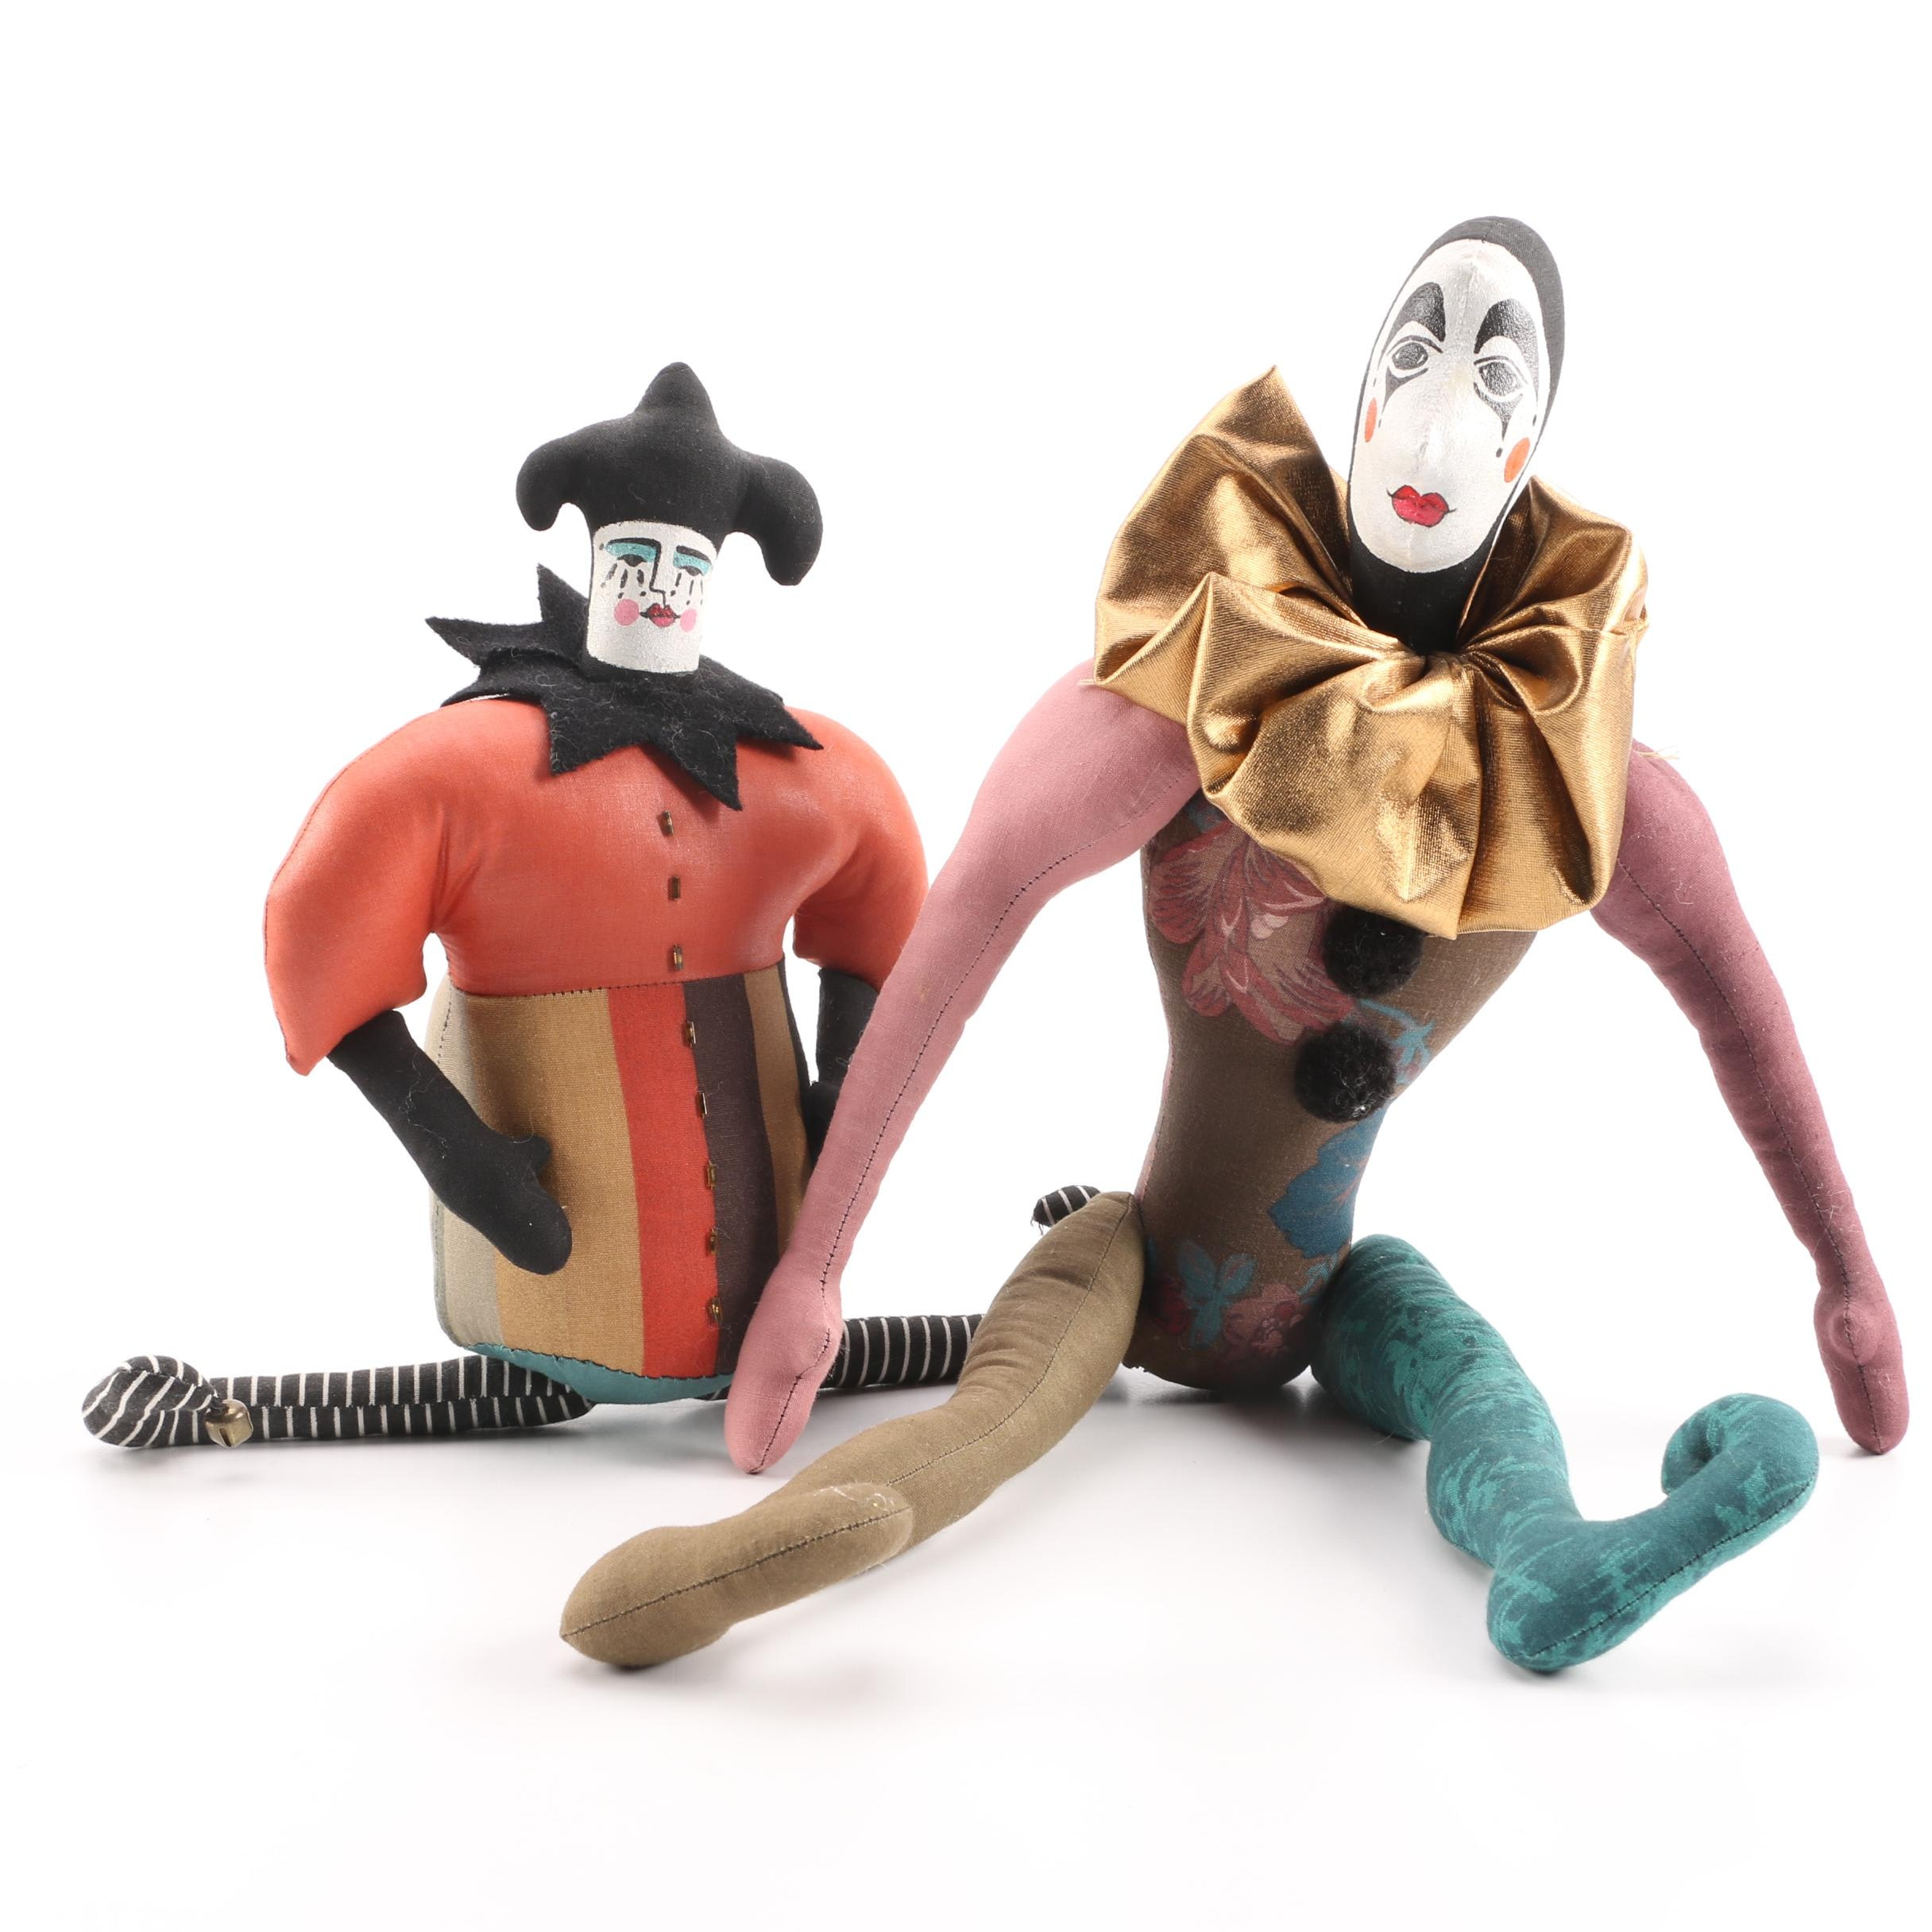 Vintage Hand Crafted Pierrot Mime Cloth Dolls